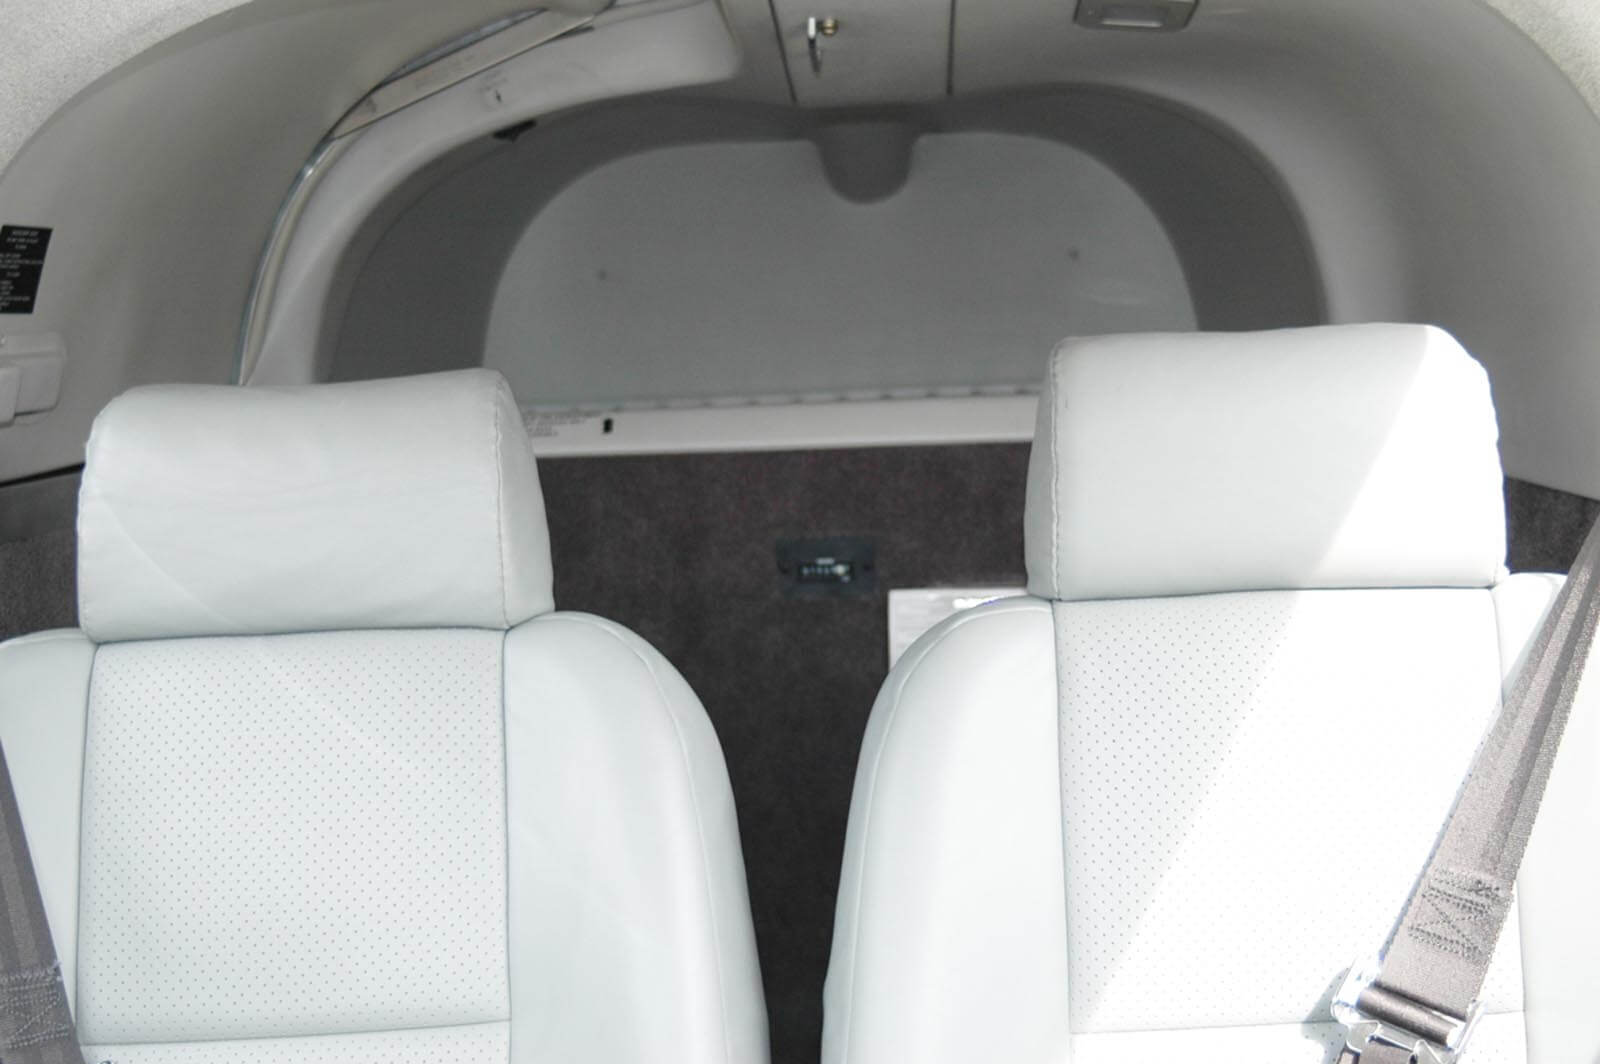 1997 Mooney 201 MSE/M20J – FOR SALE at Princeton Airport - Contact Ken Nierenberg at 609-731-4628 for details